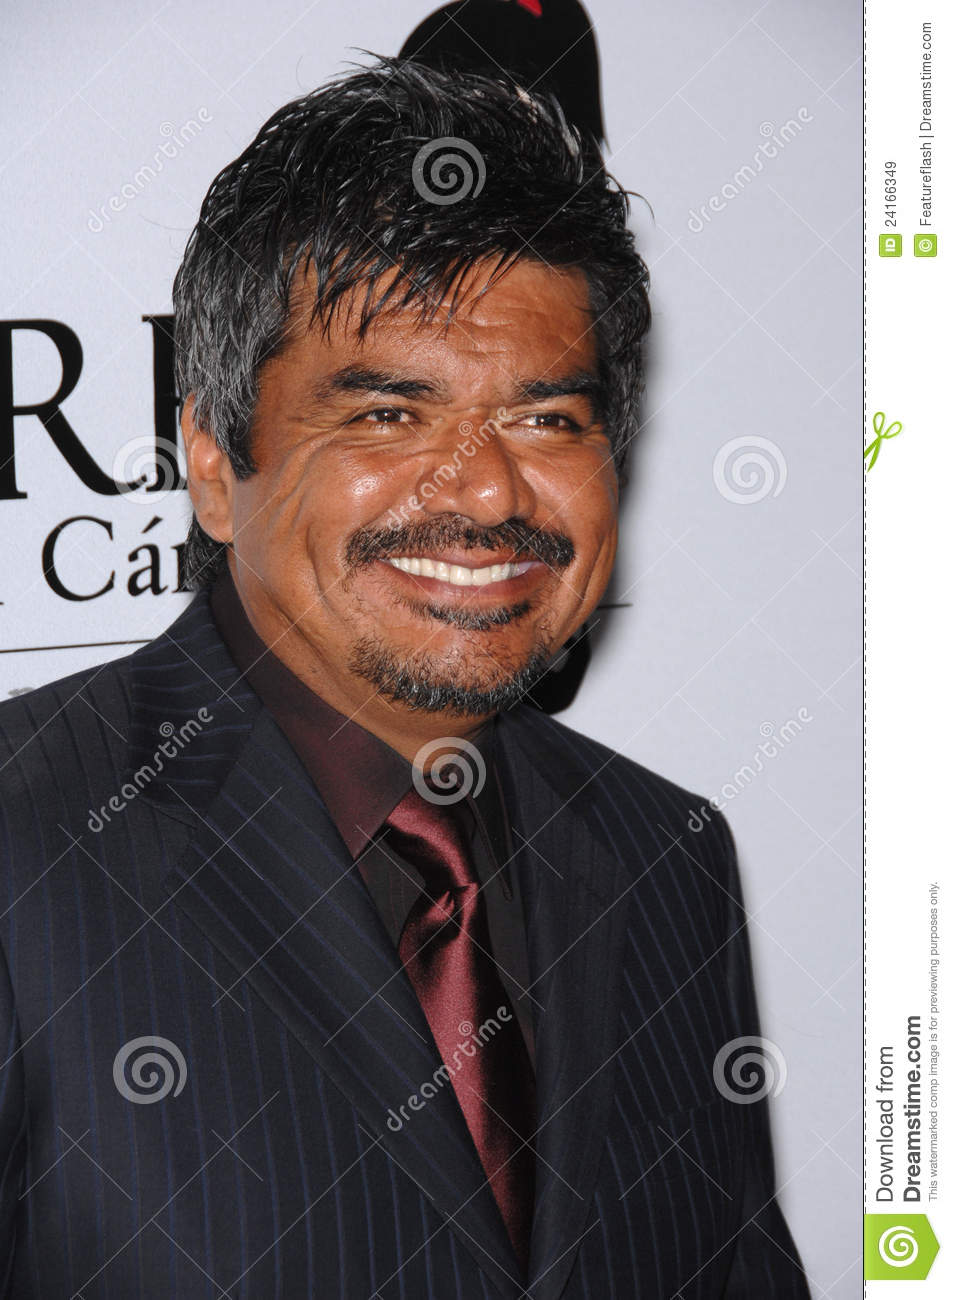 <b>George Lopez</b> Image stock éditorial - george-lopez-24166349